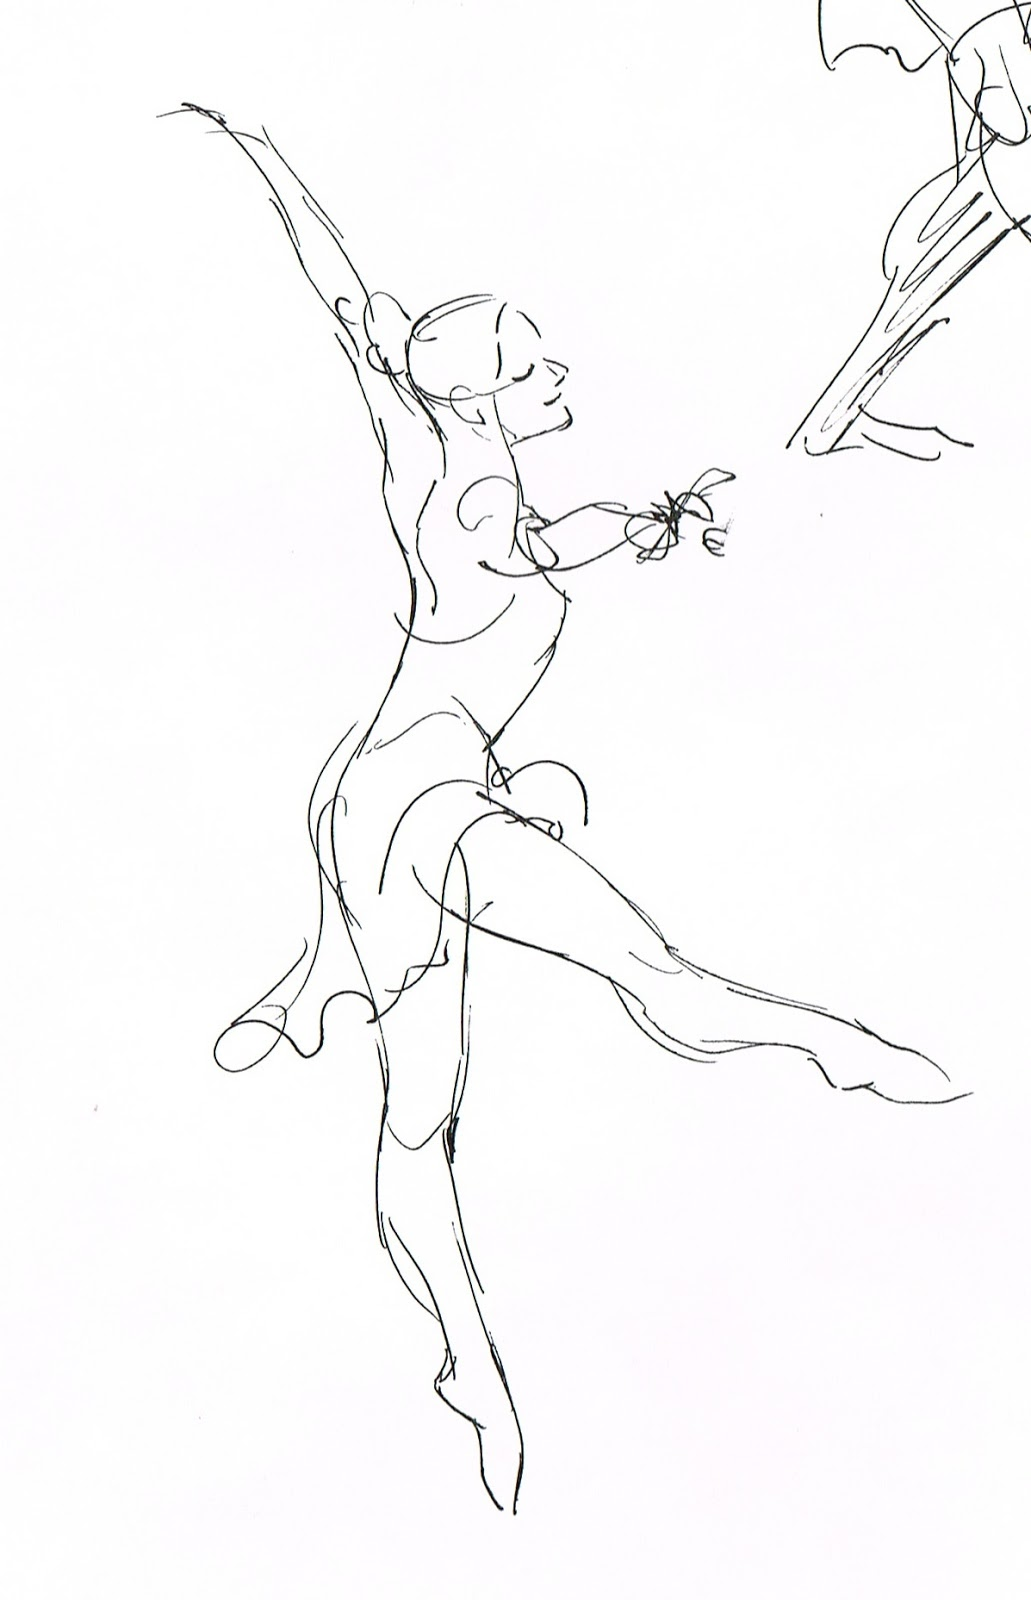 Drawn ballerine man easy Made sketching to recently Hand